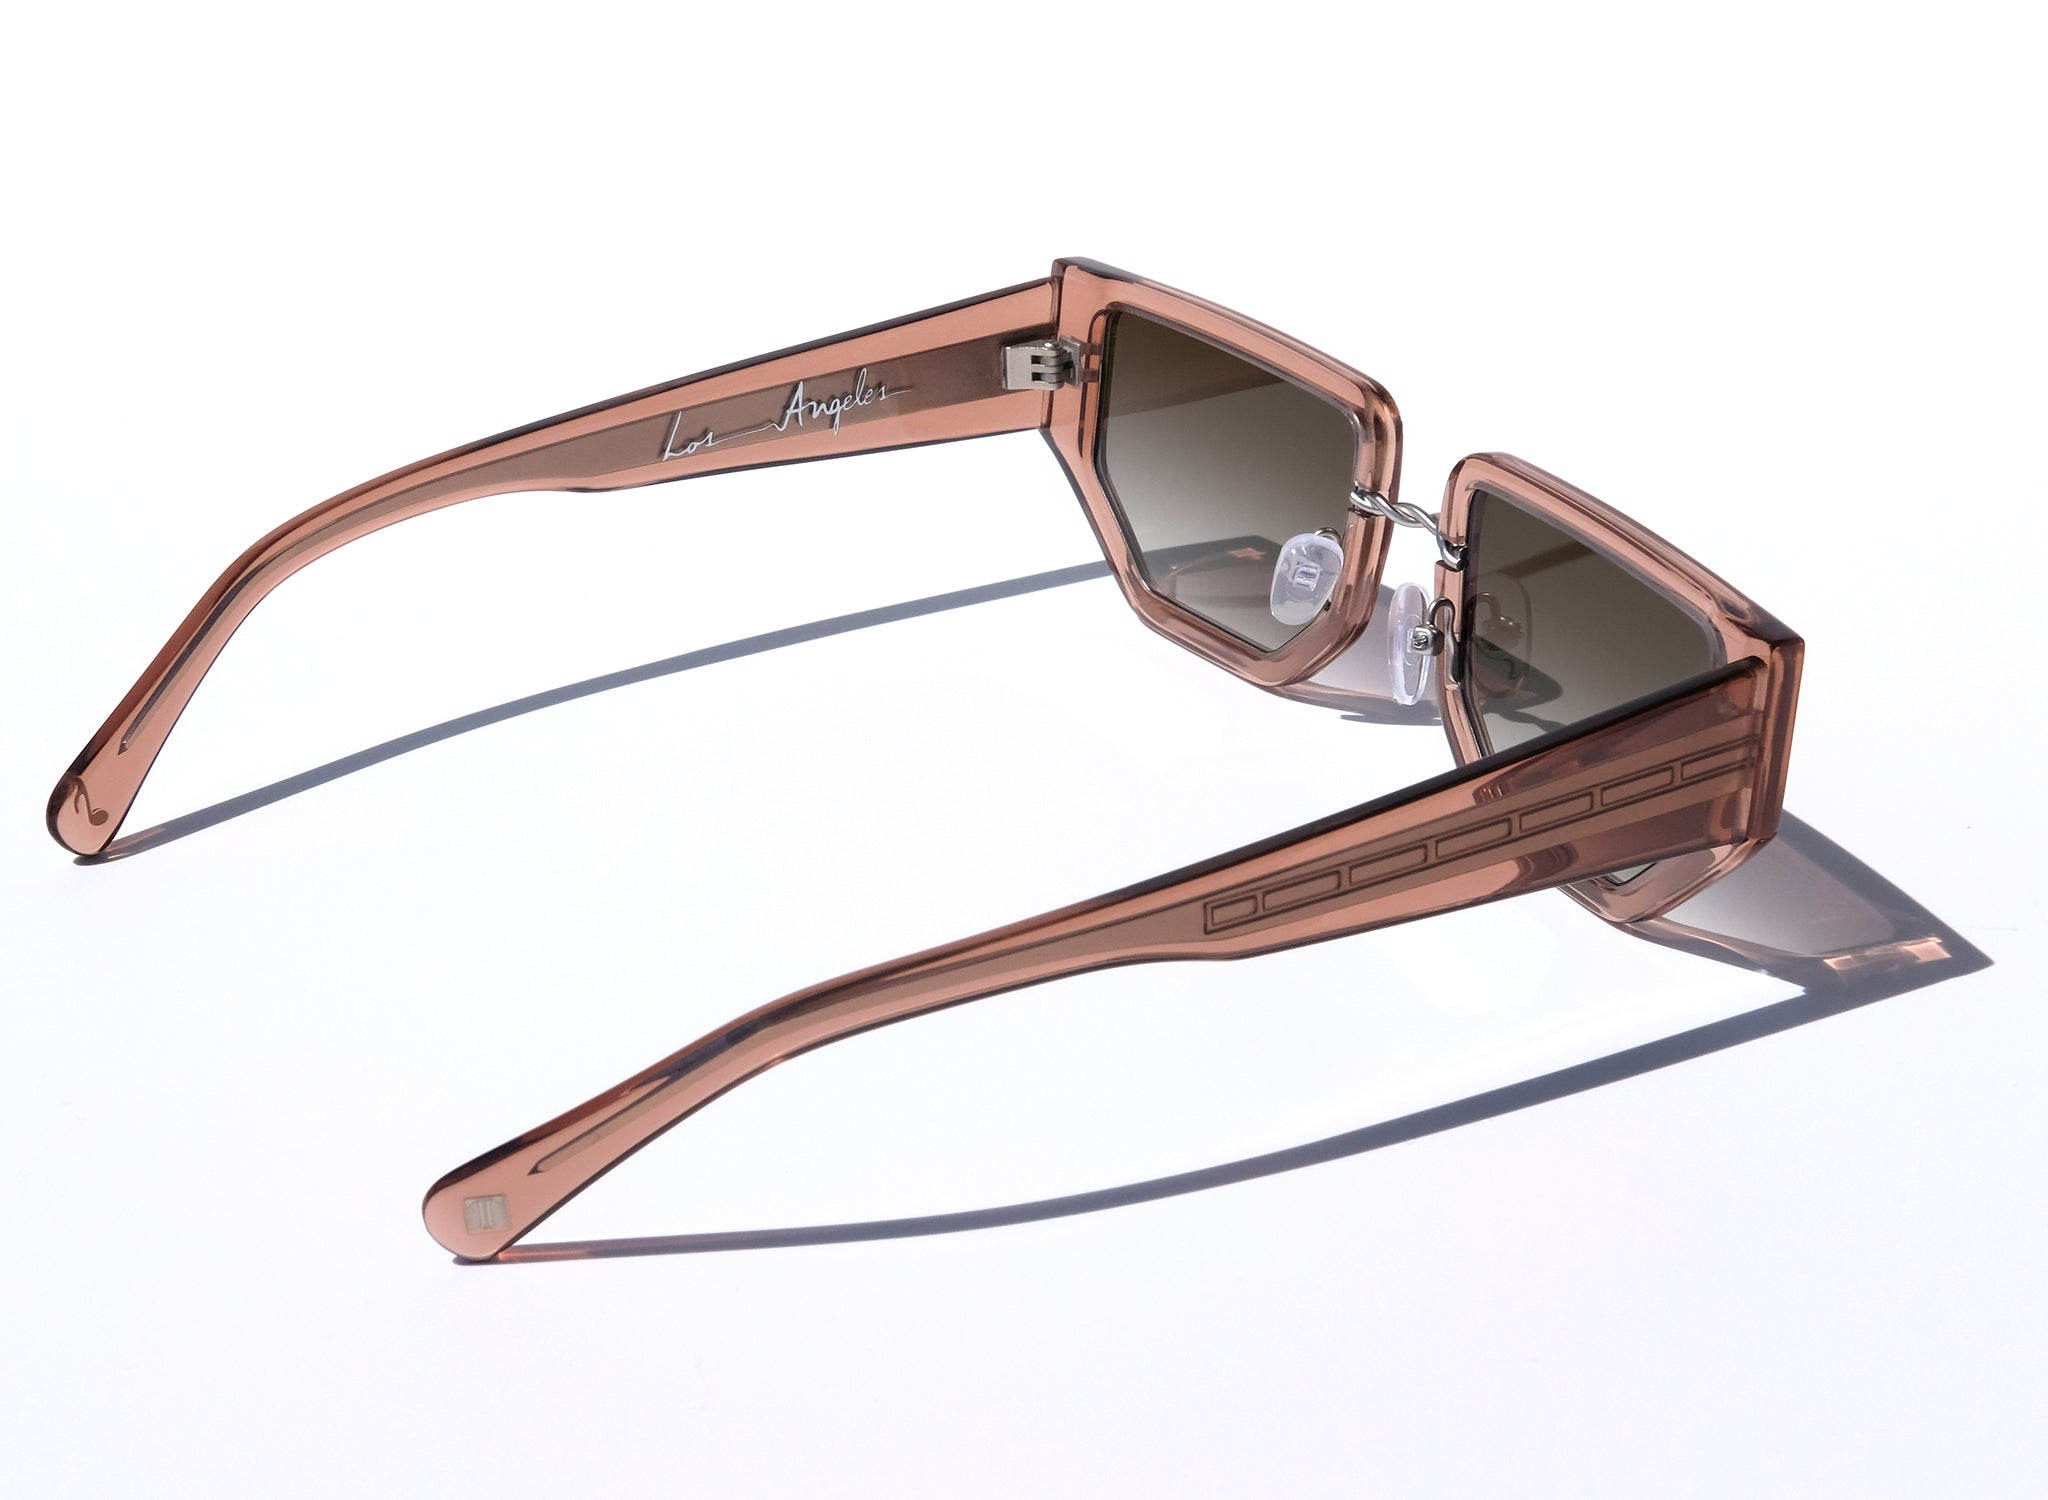 LAS MARIPOSAS IN SUNKISSED, NUDE SUNGLASSES